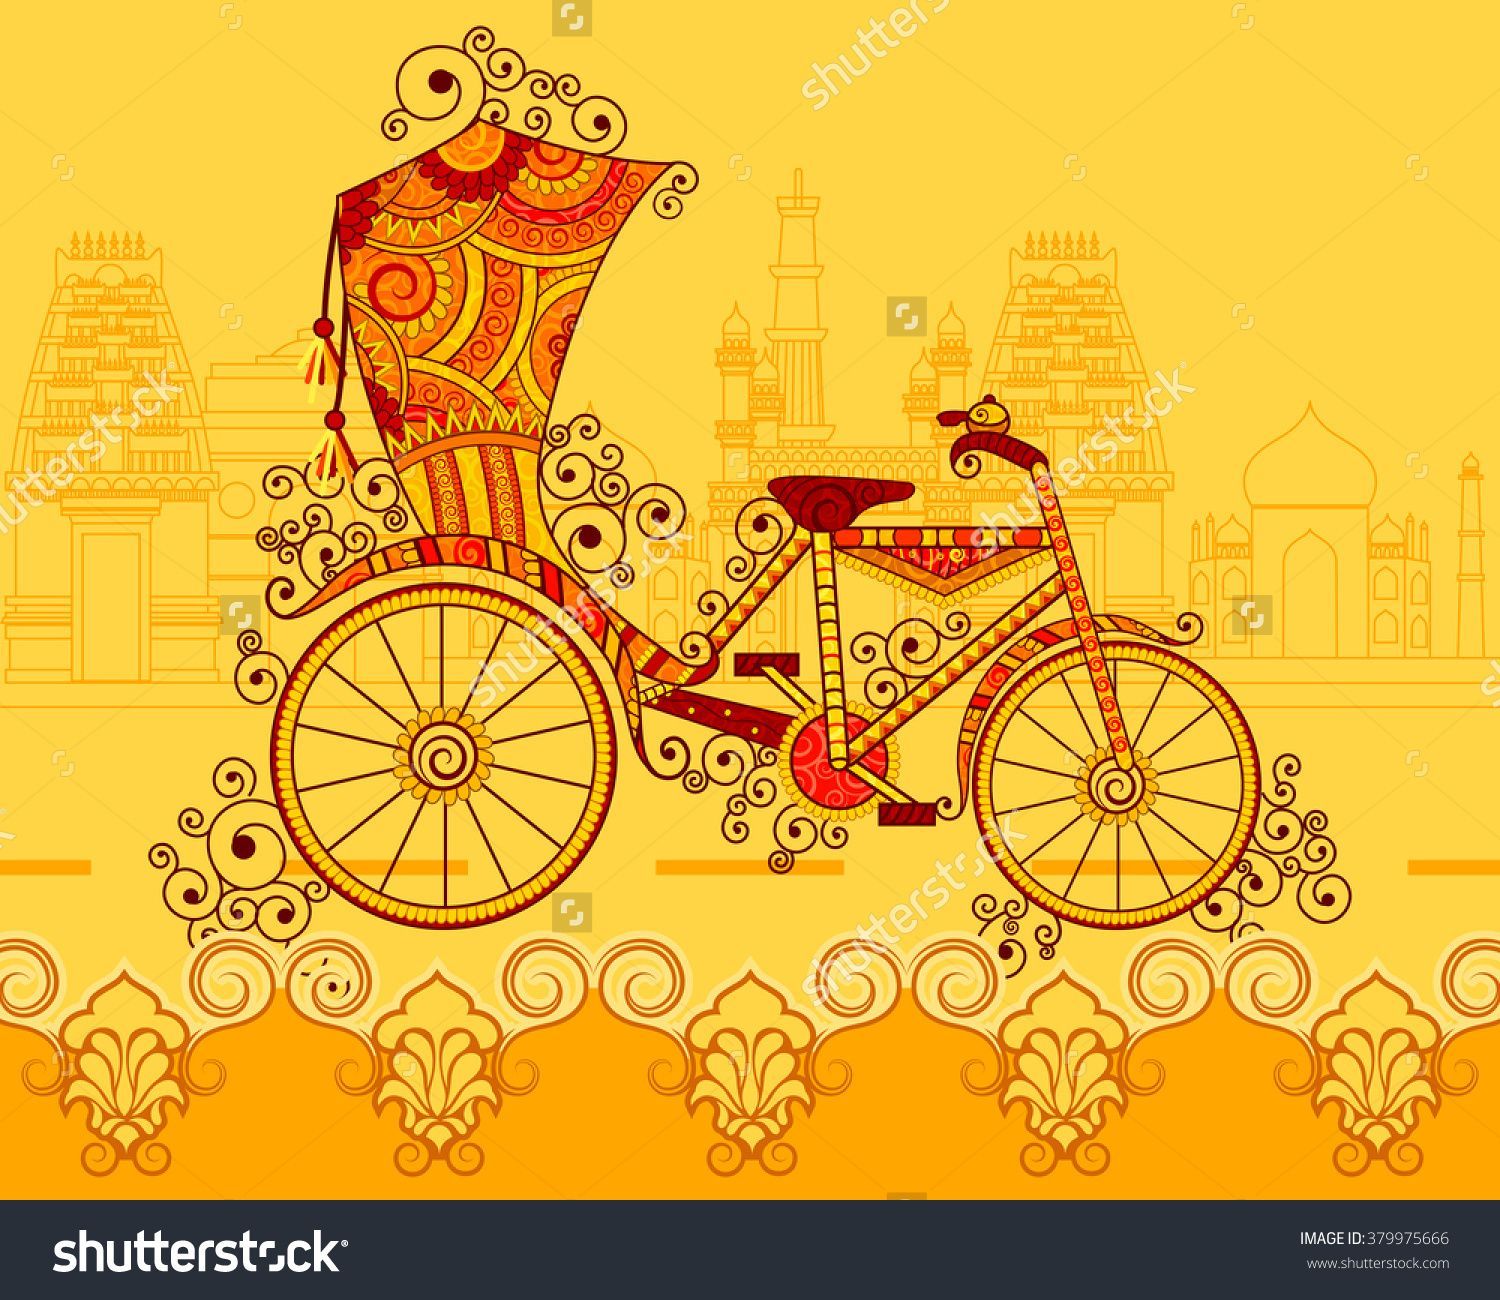 Vector Design Of Cycle Rickshaw In Indian Art Style 379975666